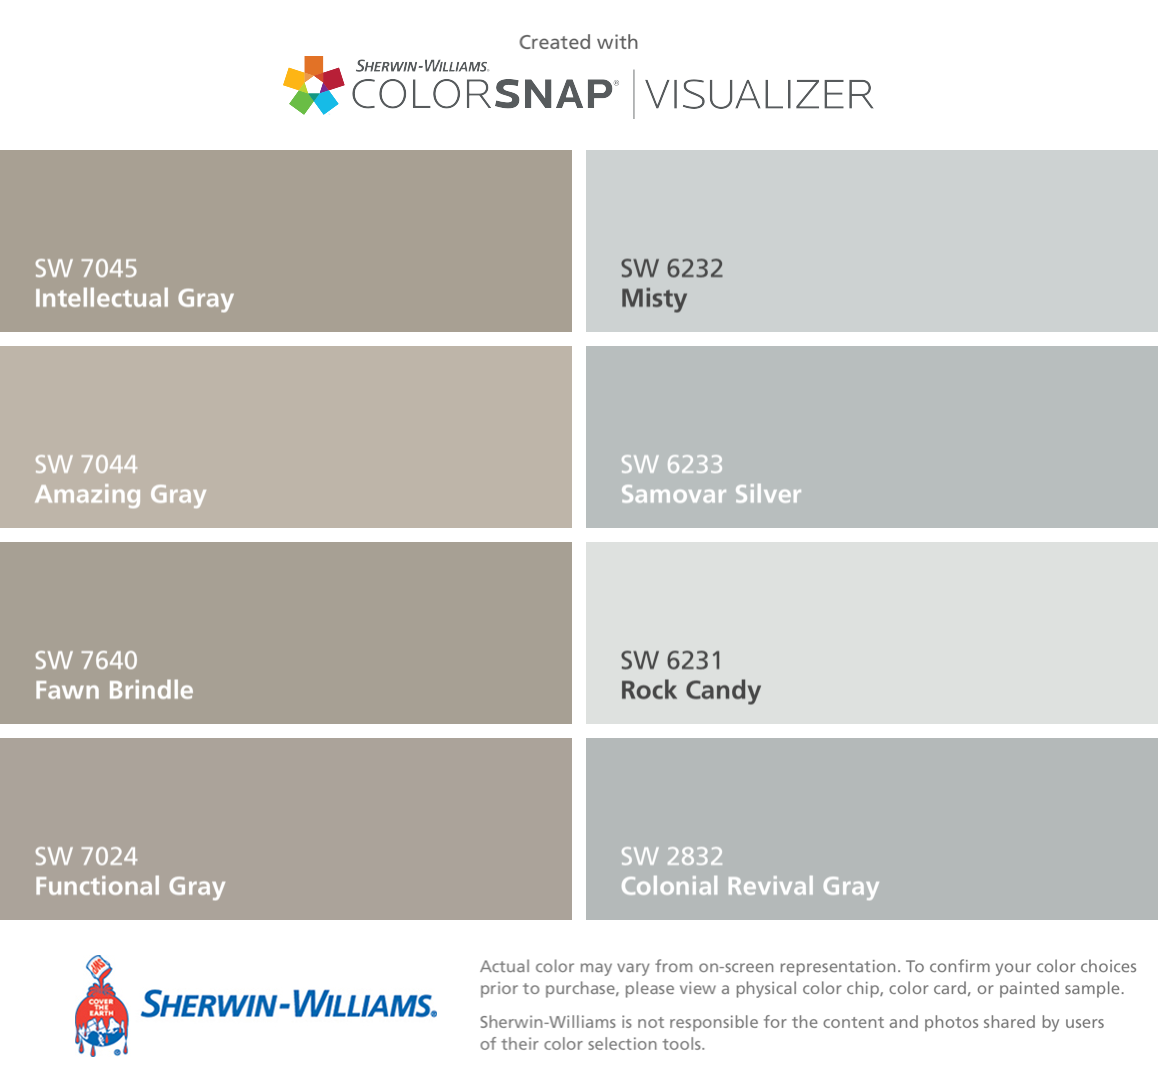 I Found These Colors With Colorsnap Visualizer For Iphone By Sherwin Williams Intellectual Gray Sw 70 Sherwin William Paint Sherwin Williams Paint Color App